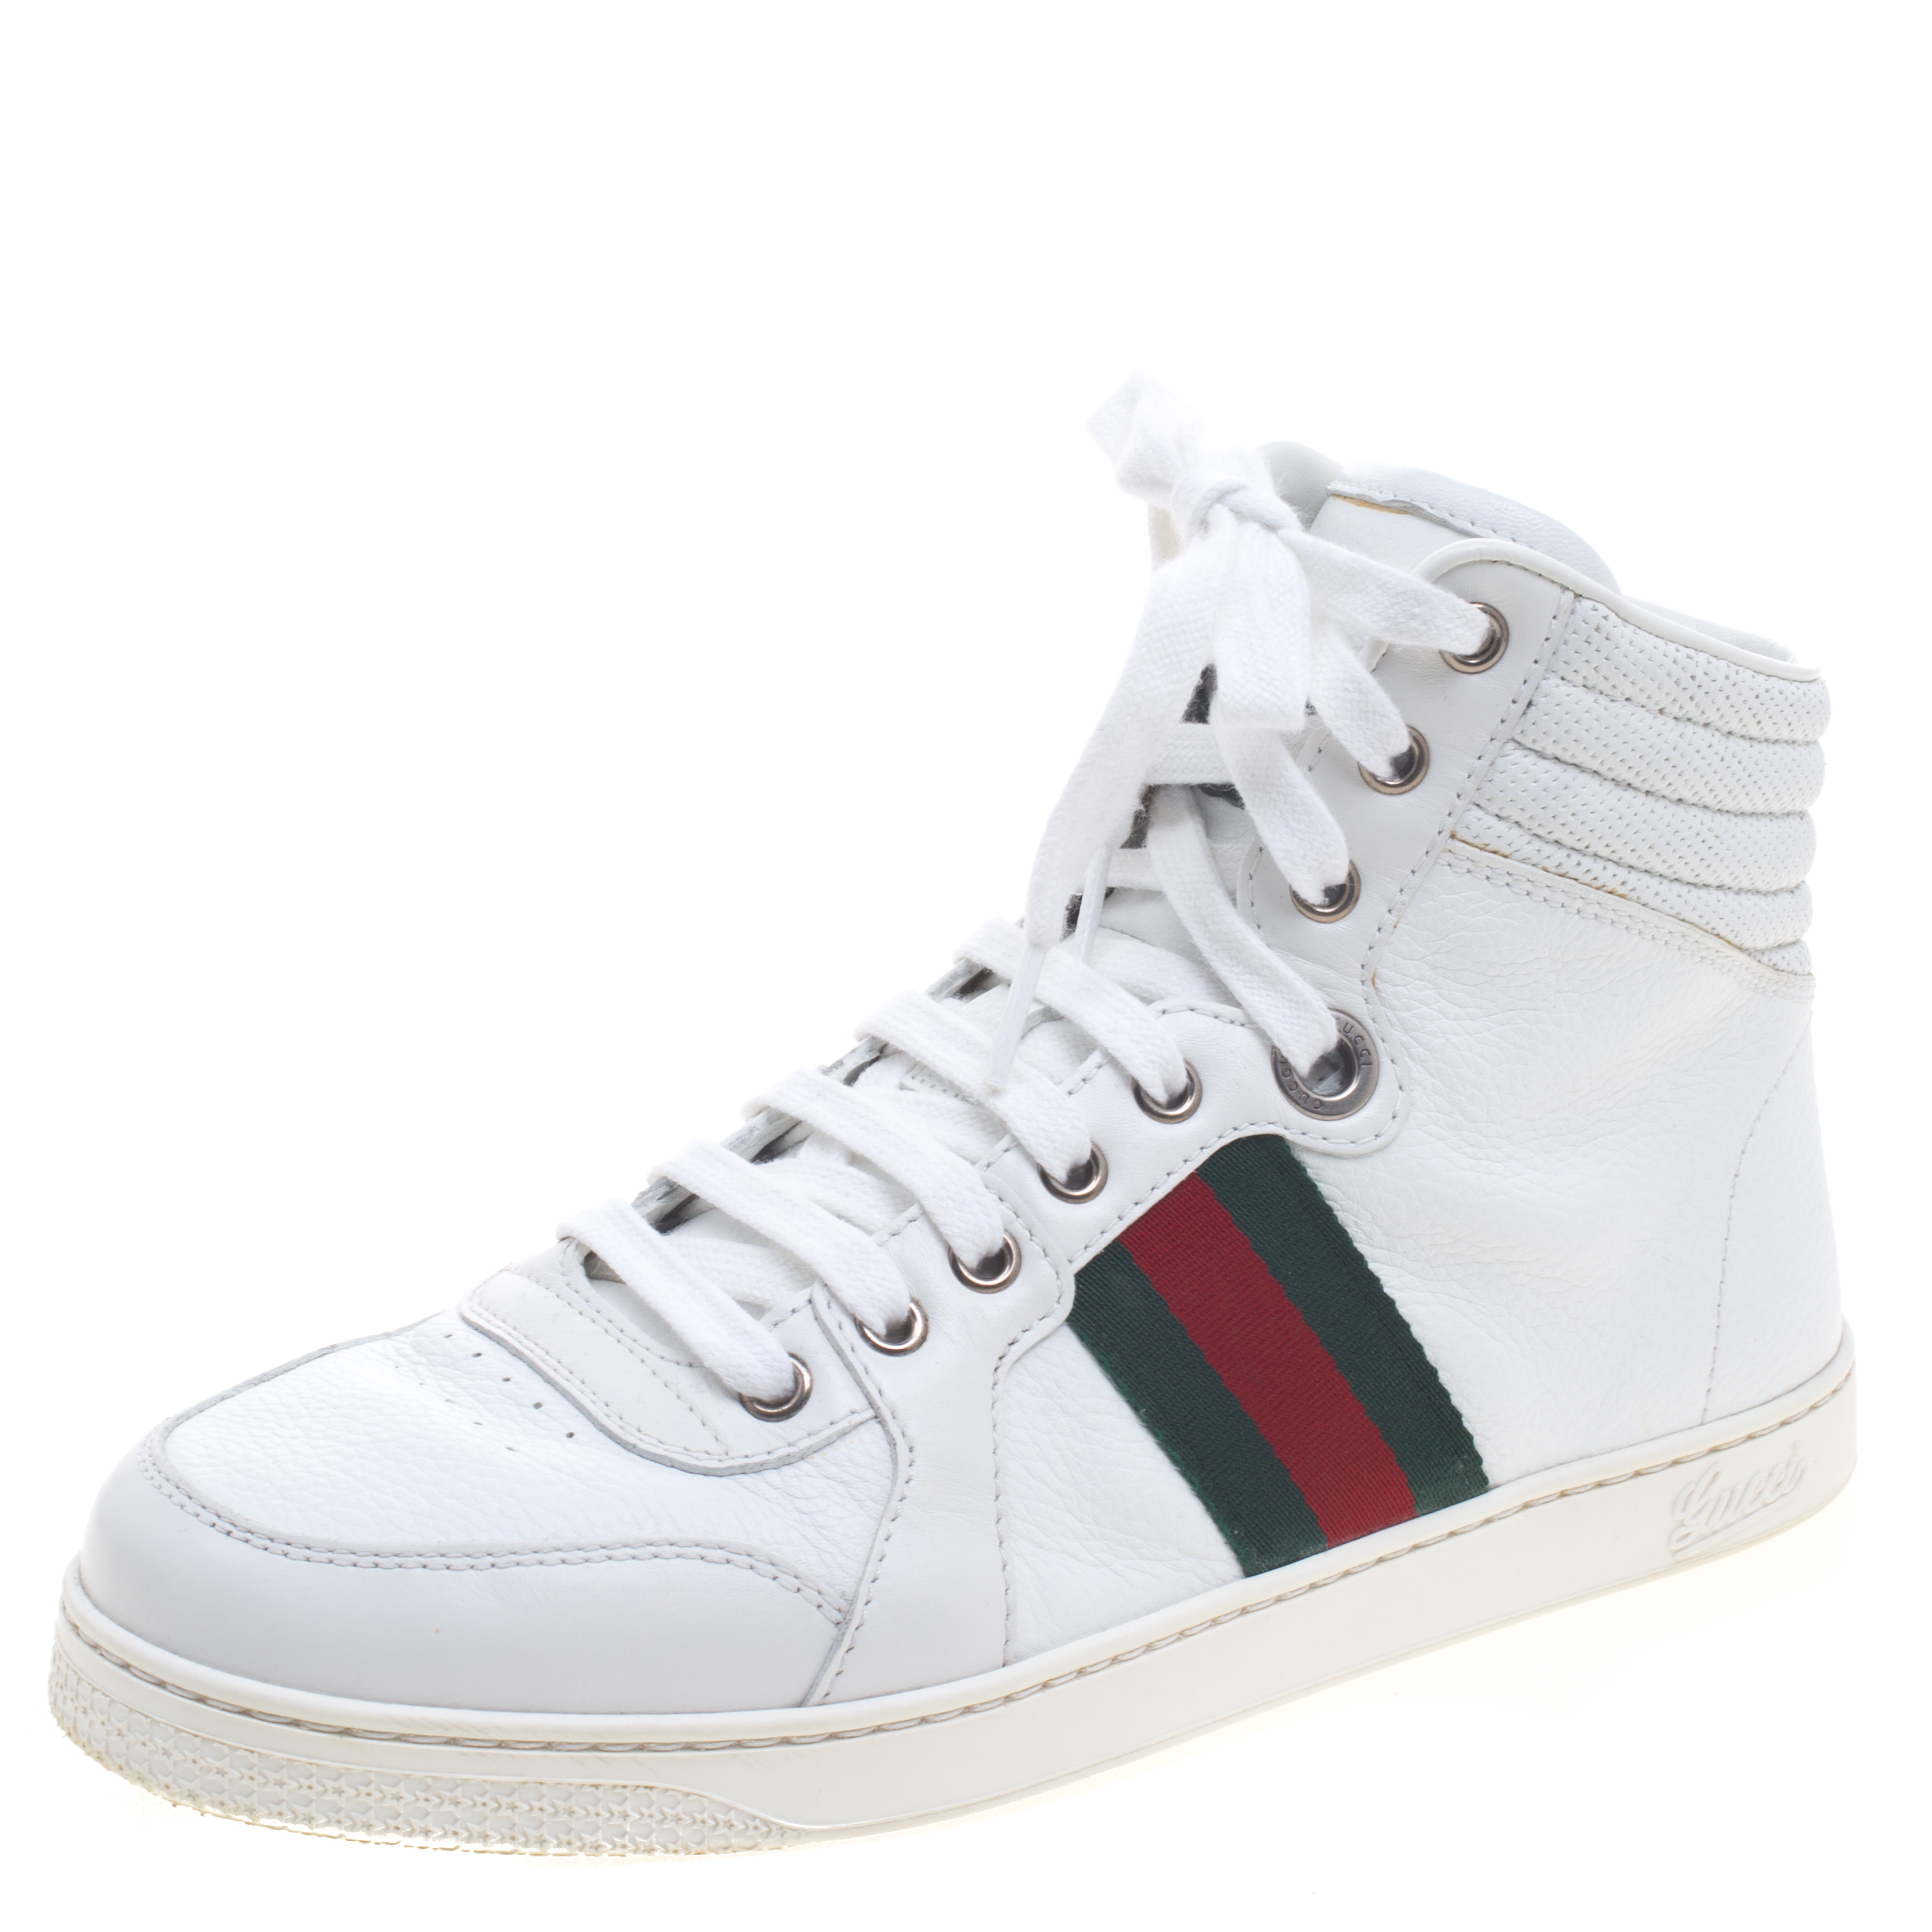 54c9071efce Buy Gucci White Leather Web Detail High Top Sneakers Size 40 94776 ...